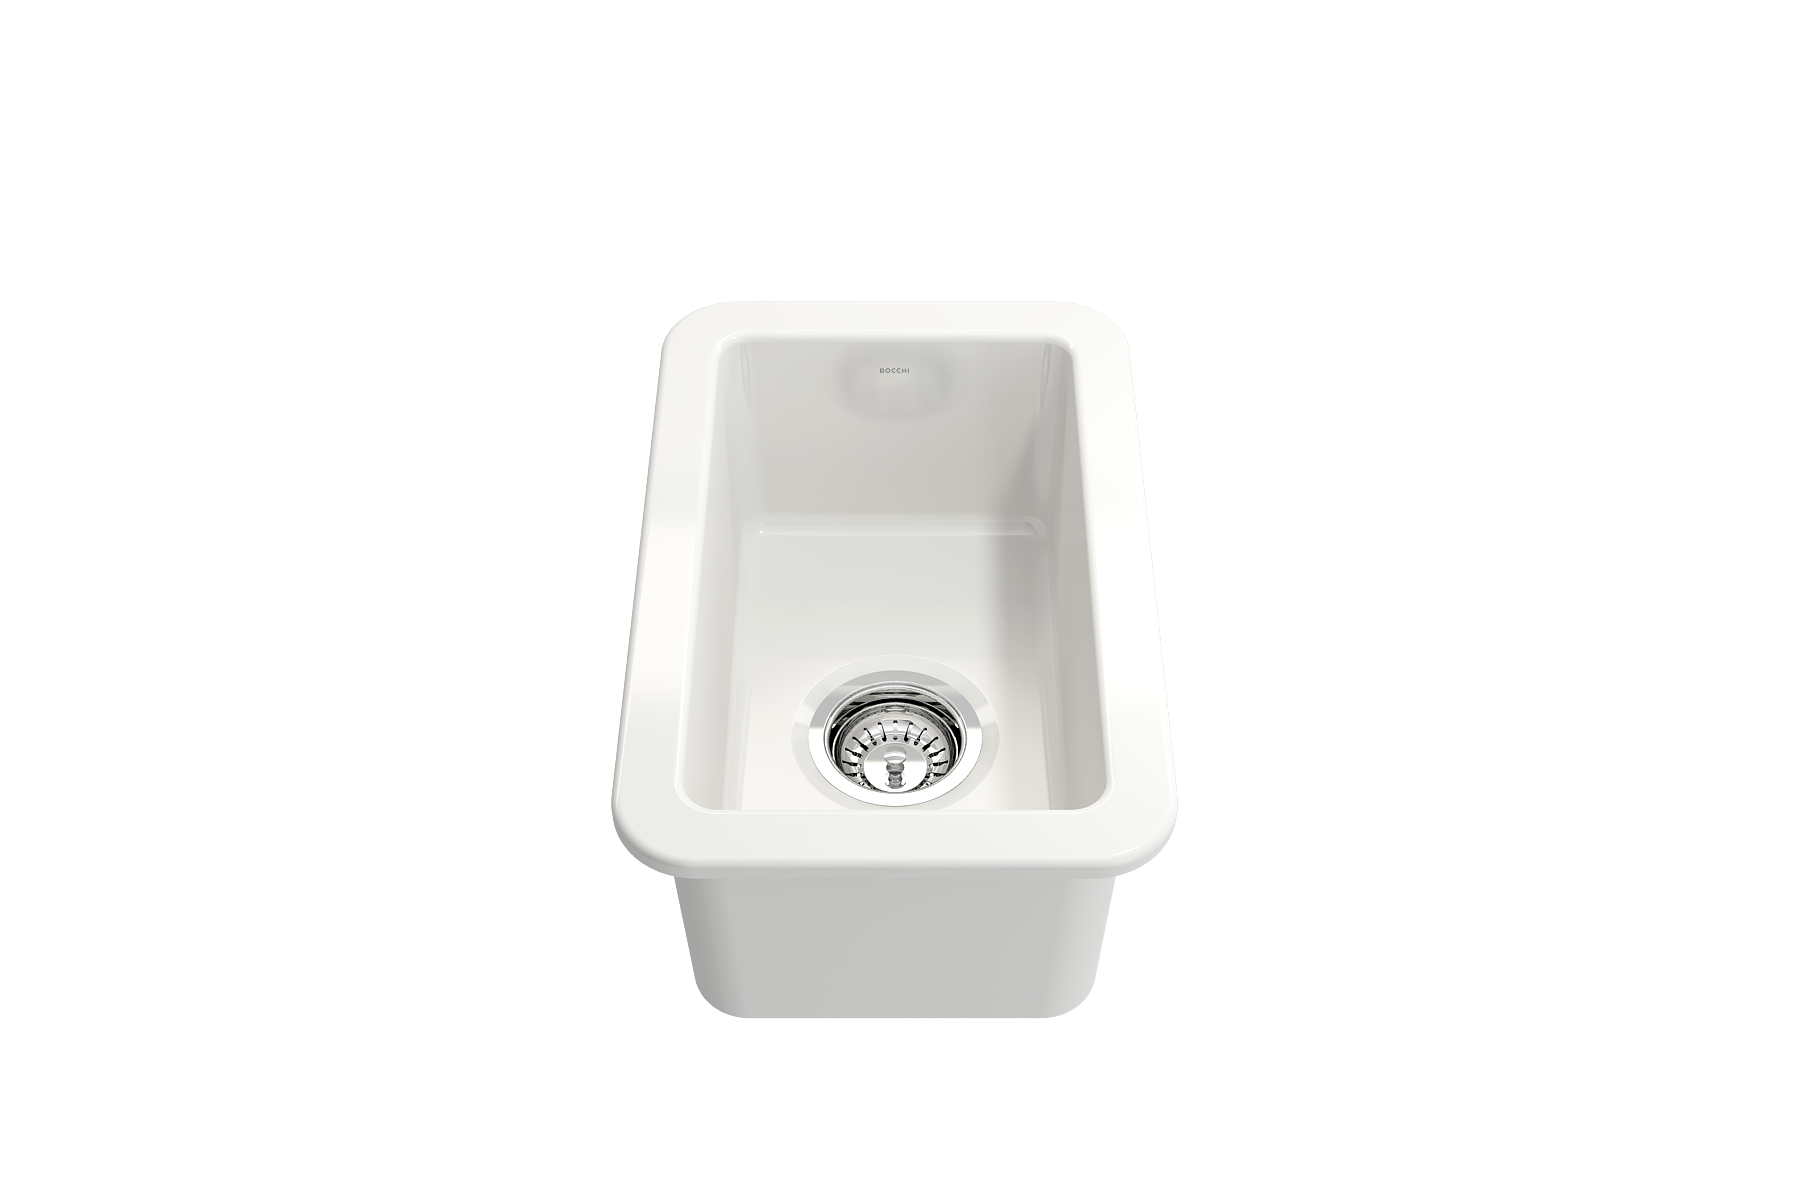 Fireclay Kitchen Sinks on pedestal sinks product, glass sinks product, franke kitchen sinks product, bathroom sinks product, farmhouse sink product, kohler kitchen sinks product, blanco kitchen sinks product, small kitchen sinks product, composite sinks product, copper sinks product, drop-in sinks product, apron kitchen sink product, elkay sinks product, black kitchen sinks product, stainless steel sinks product, utility sinks product, granite sinks product, kitchen accessories product, ceramic sinks product, apron front sinks product,